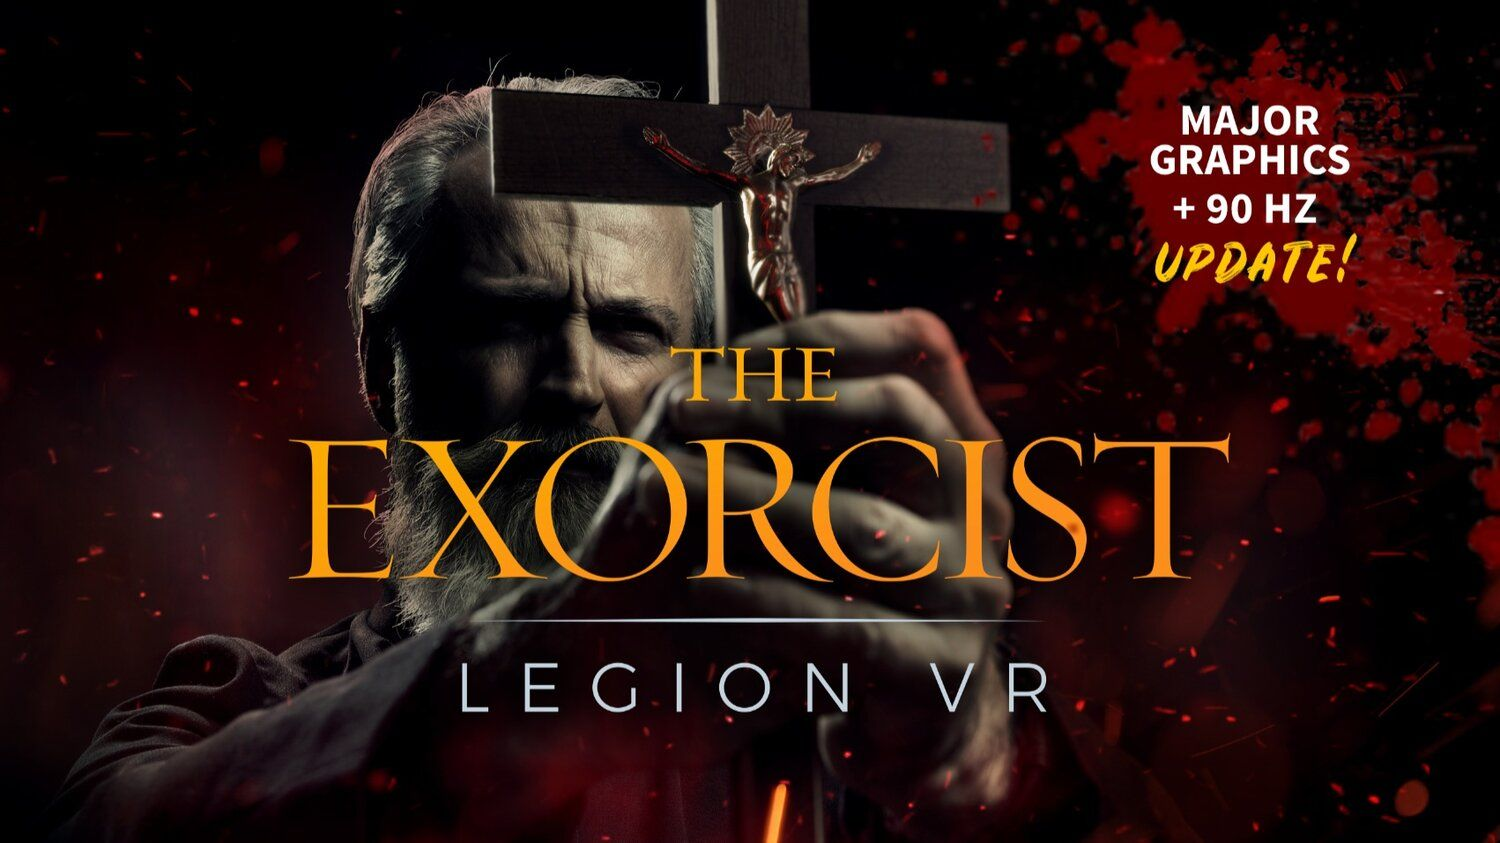 New Quest 2 update for The Exorcist: Legion VR improves graphics and refresh rate